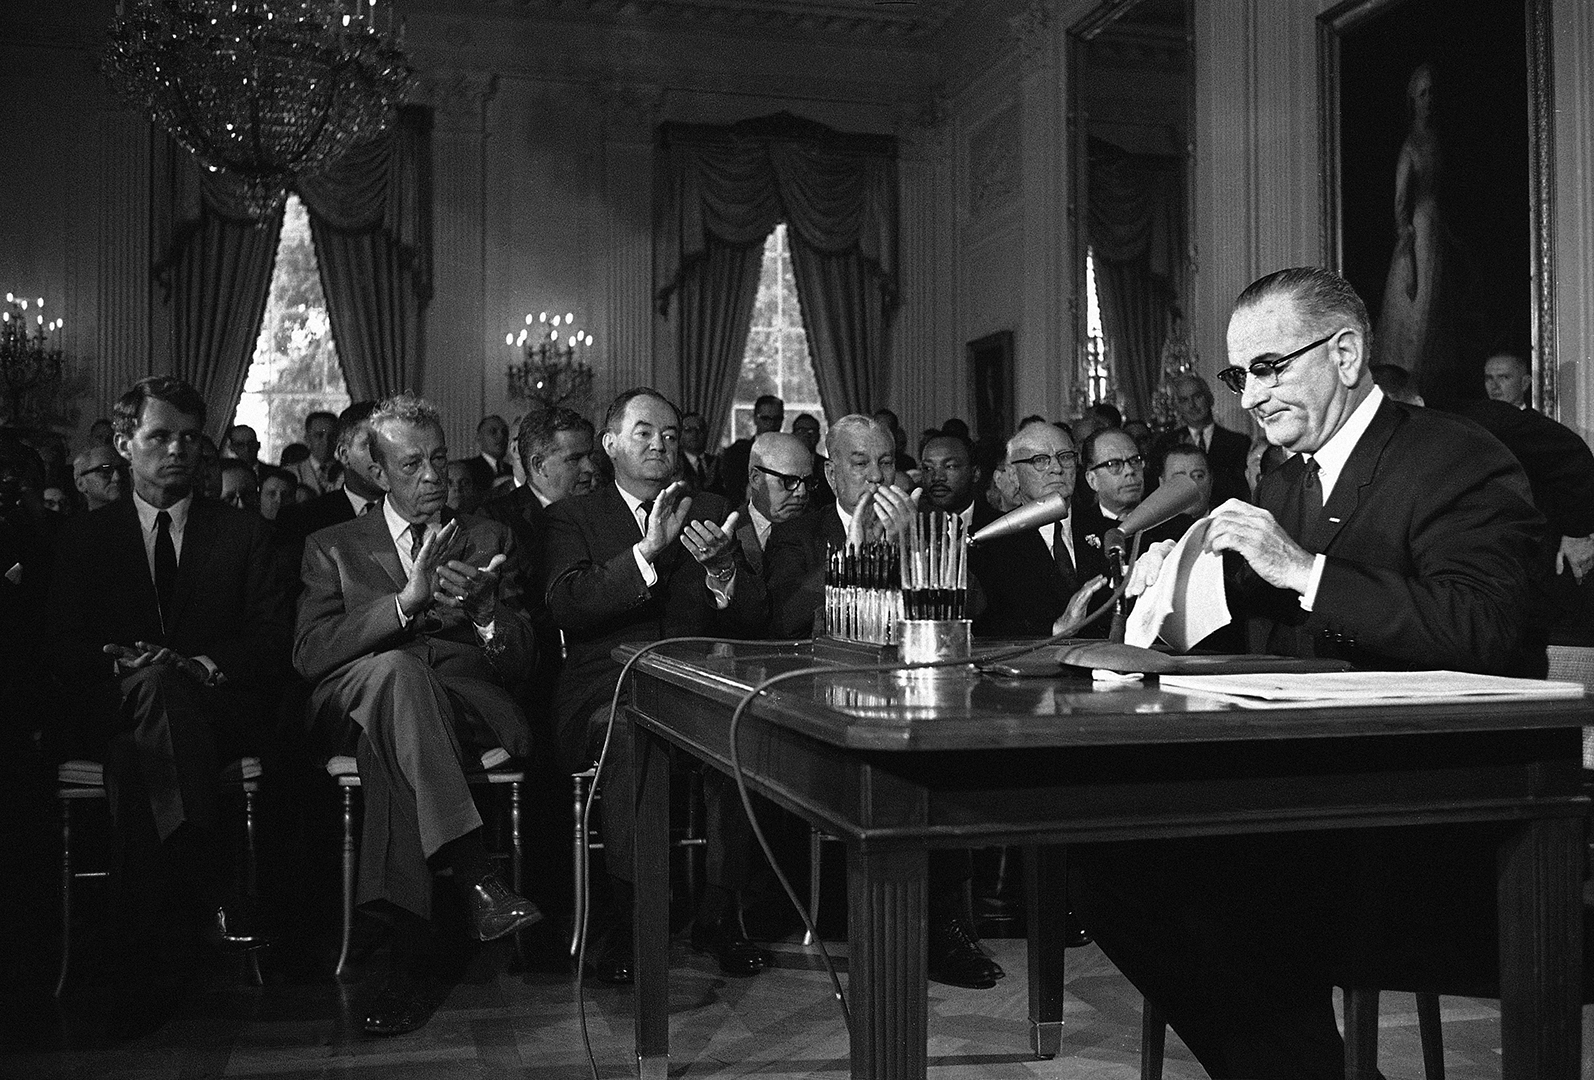 President Lyndon B. Johnson is applauded as he finished his speech in the White House in Washington on July 2, 1964, over a radio-TV network prior to signing the 1964 Civil Rights Bill. Front row from left: Atty. Gen. Robert F. Kennedy, Sen. Everett M. Dirksen, R-Ill; Sen. Hubert H. Humphrey, D-Minn.; Rep. Charles Halleck, R-Ind.; and Rep. Emanuel Celler, D-N.Y. Second row: Whitney Young, behind Dirksen, executive director, National Urban League; Rep. Richard Bolling, D-Mo.; Dr. Martin Luther King, Southern Christian Leadership Conference; and Sen. Thomas H. Kuchel, R-California. (AP Photo)